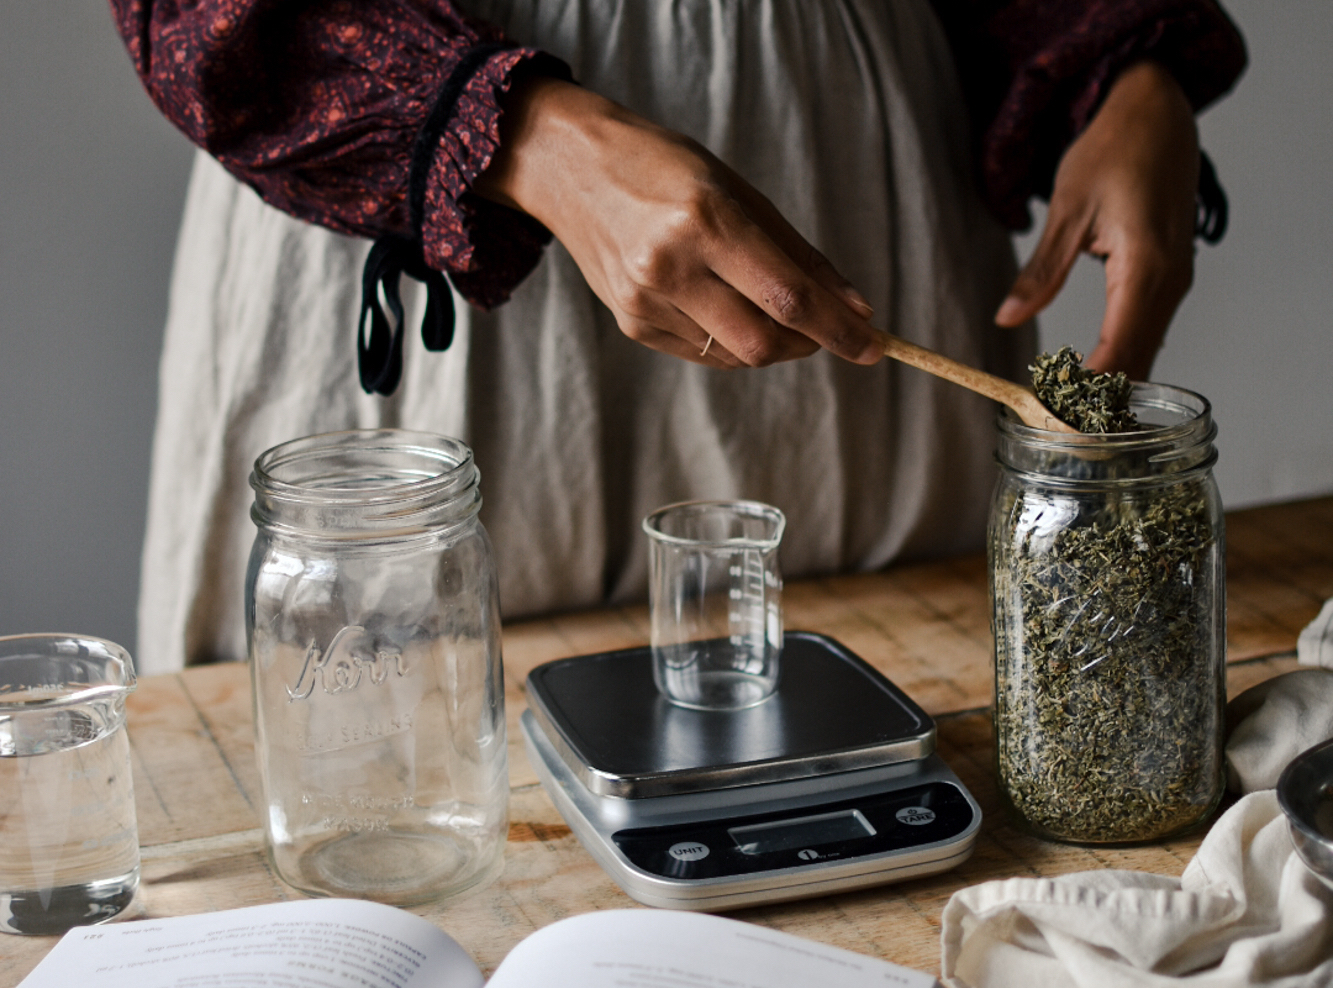 Mastering Herbal Formulations Course By Herbal Academy